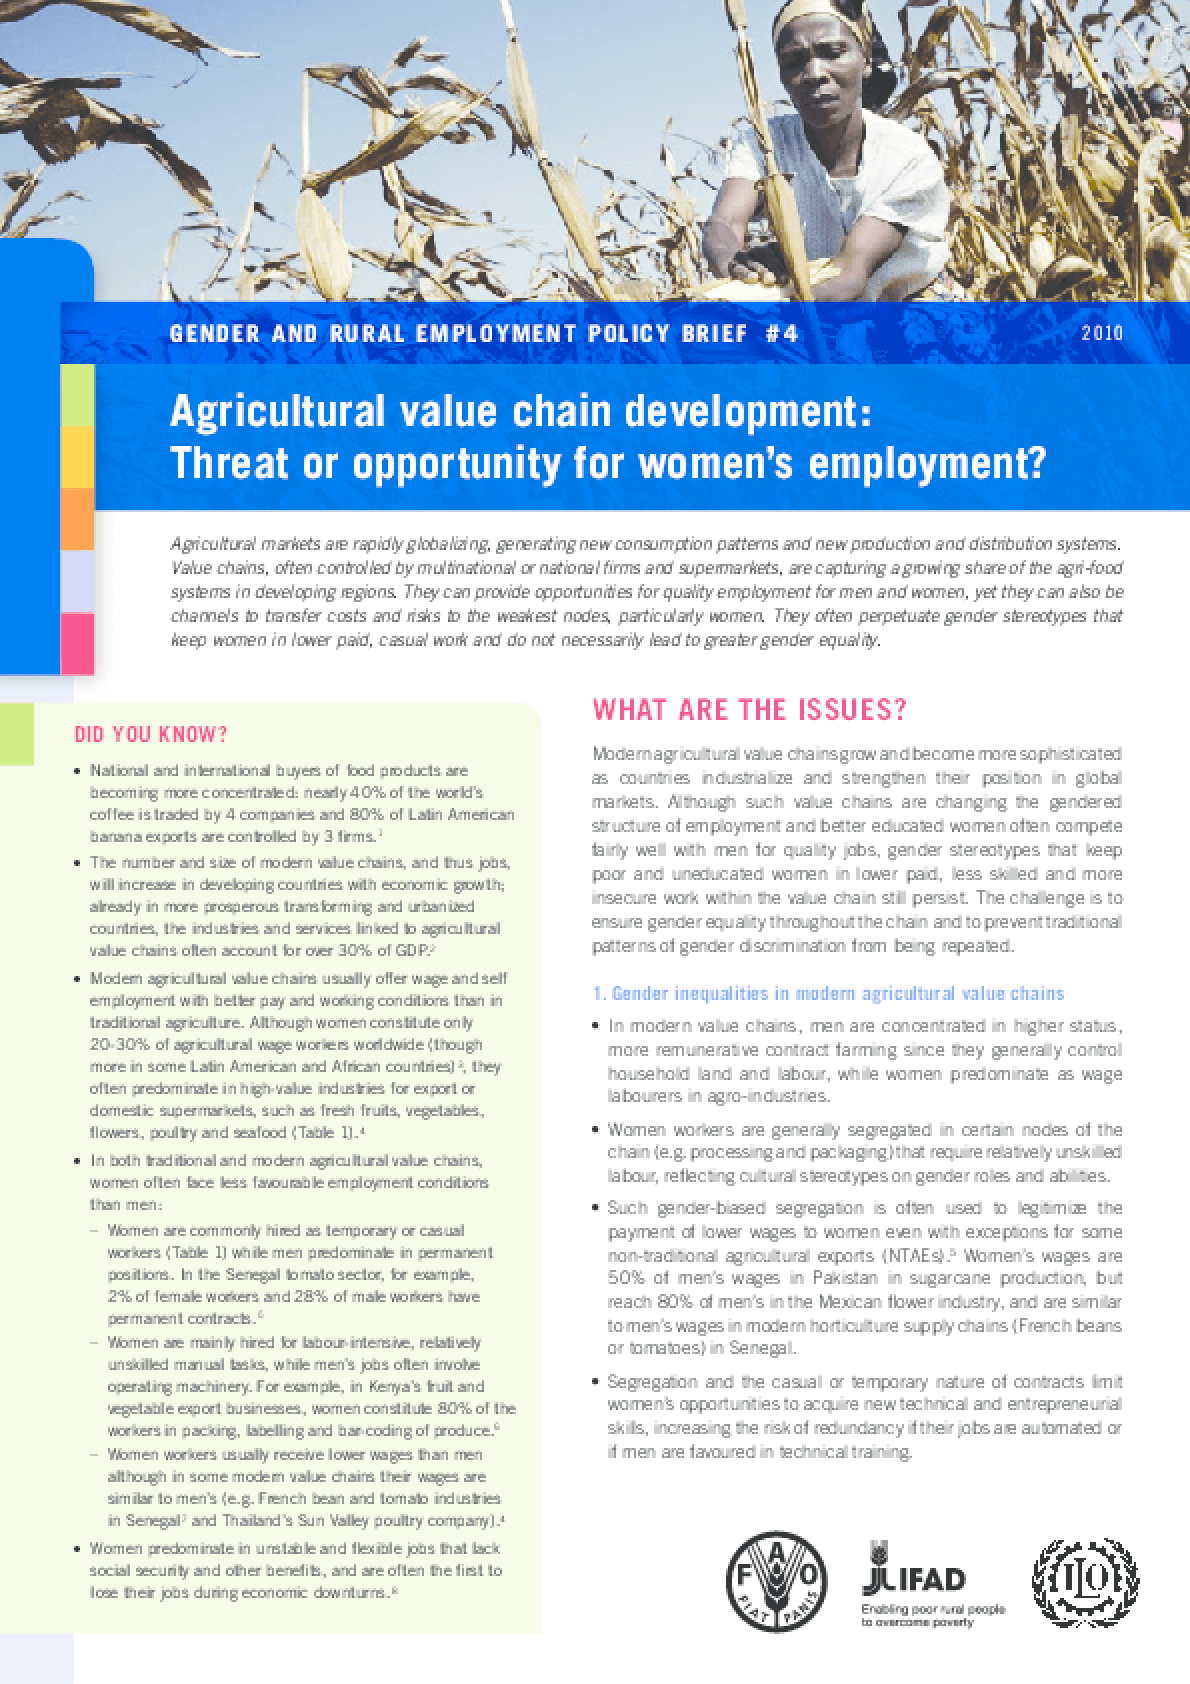 Agricultural Value Chain Development: Threat or Opportunity for Women's Employment?